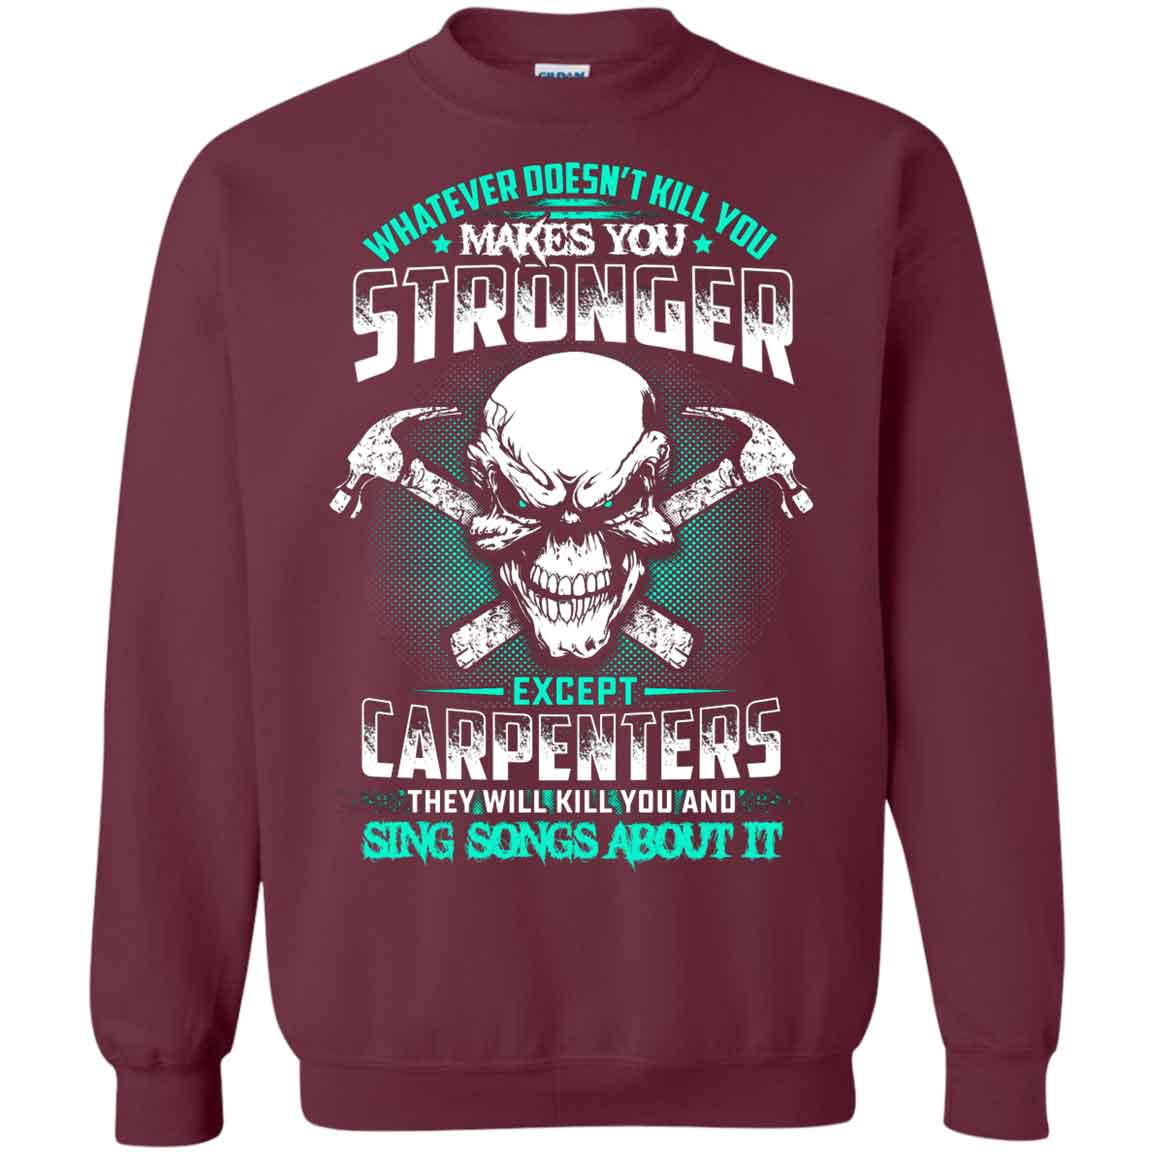 Carpenters They Will Kill You And Sing Songs About It Hoodies Sweatshirts